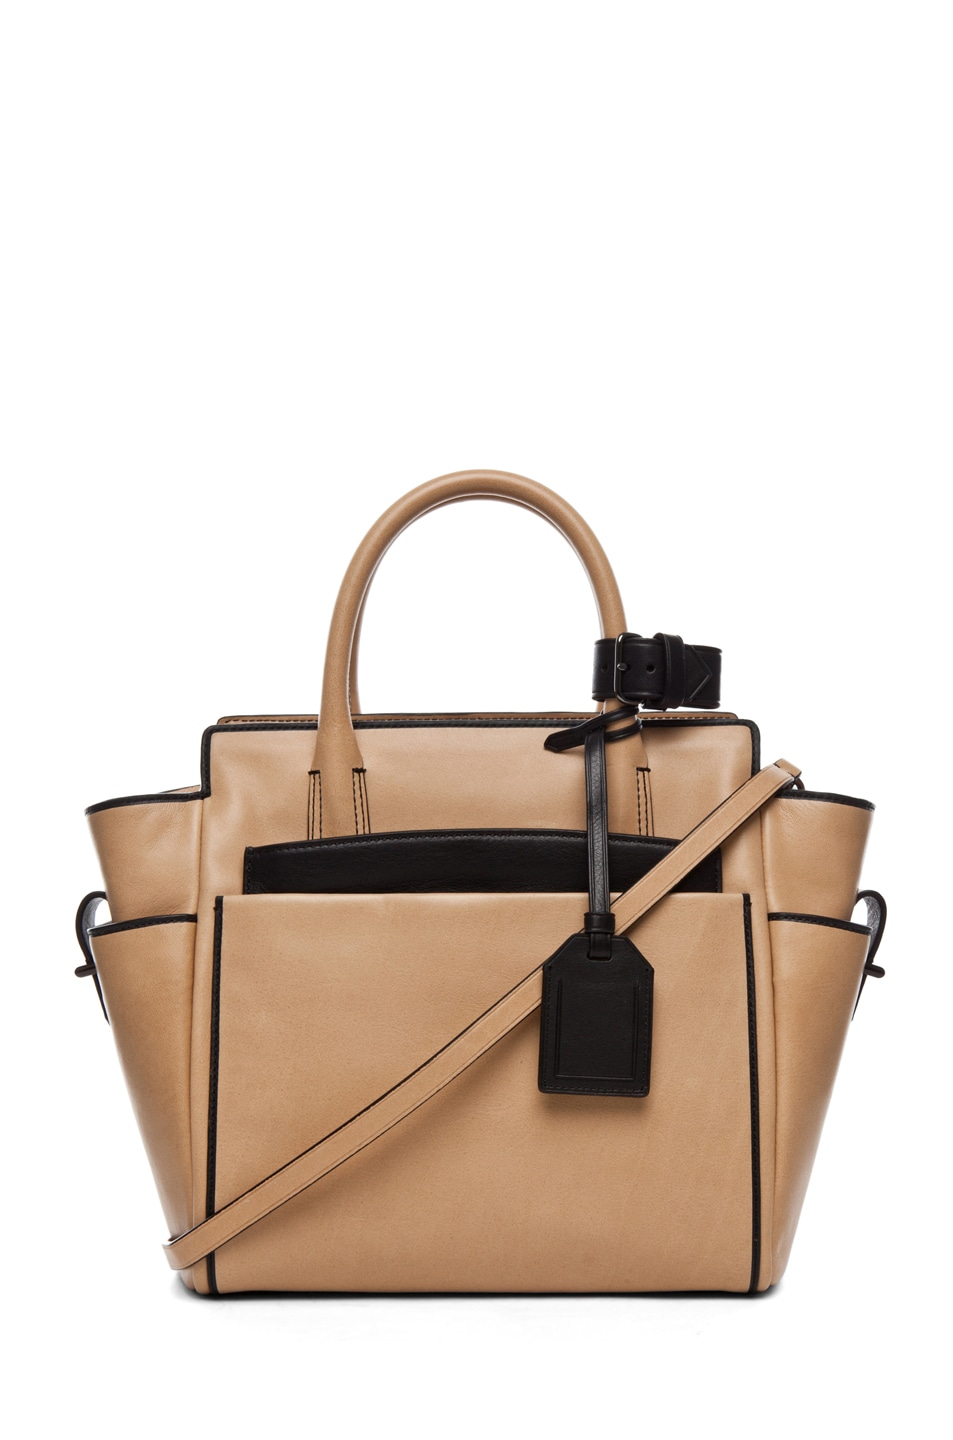 Image 1 of Reed Krakoff Mini Atlantique in Nude